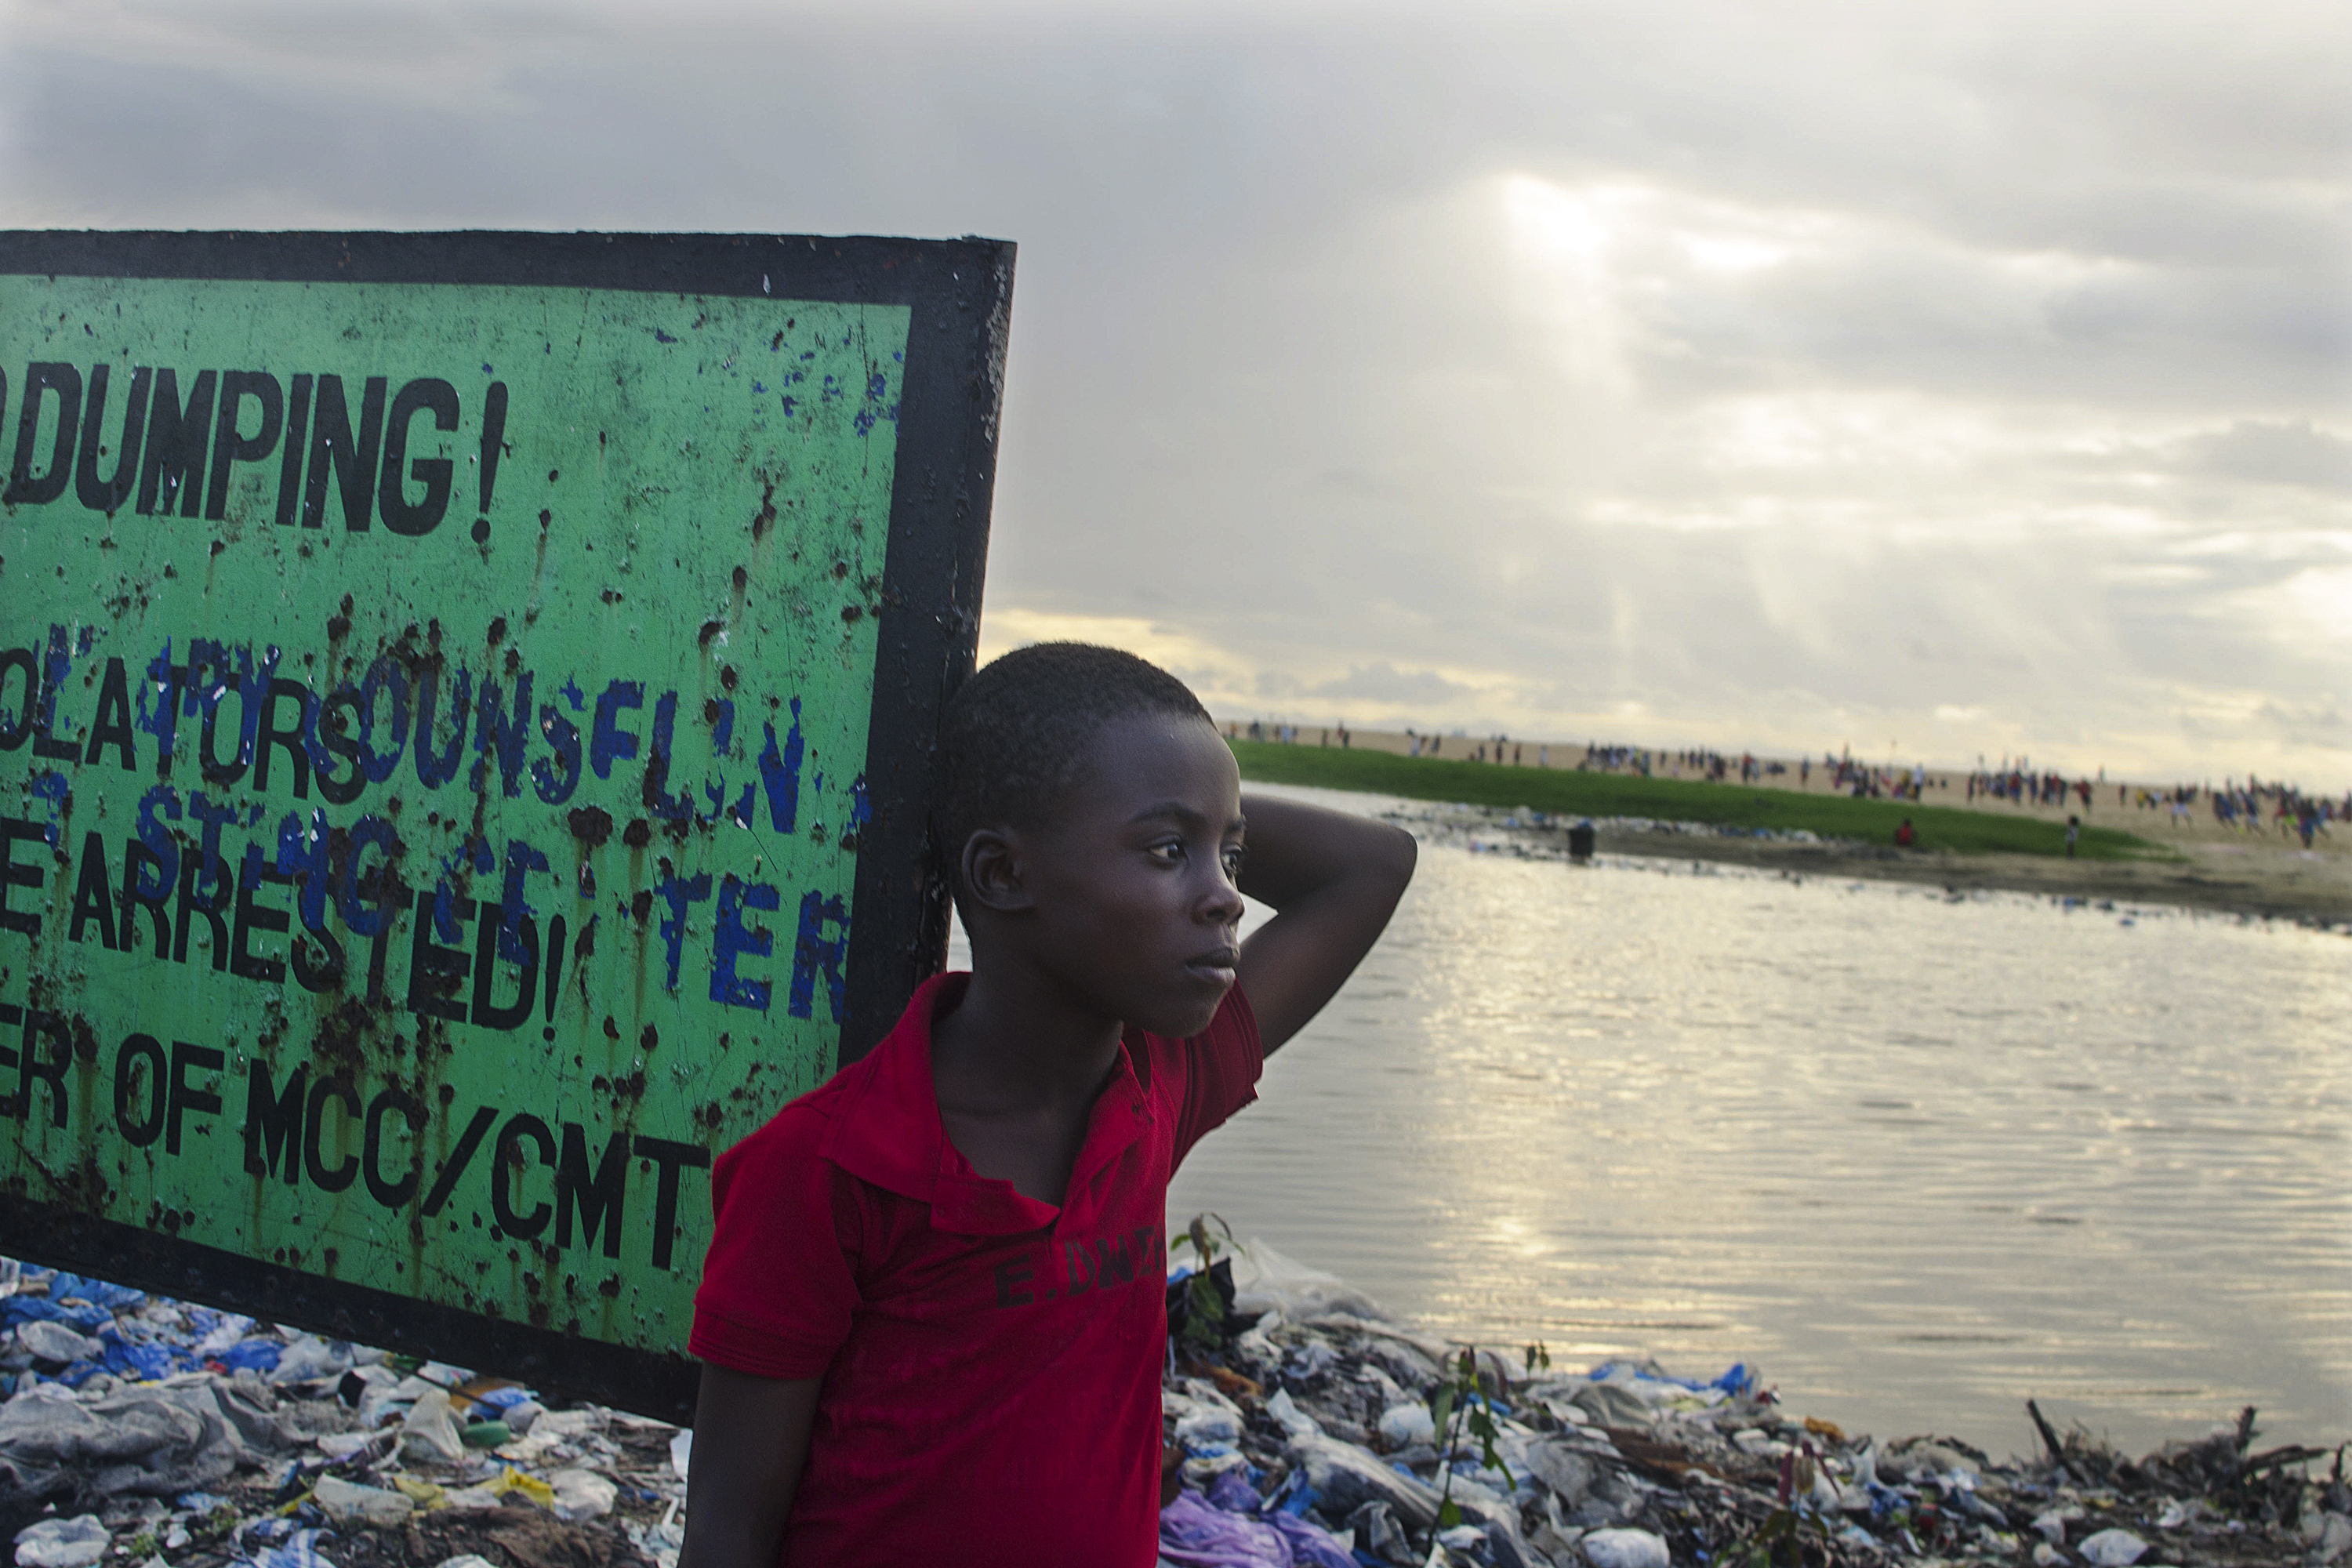 """Prince, a West Point resident, stands by a garbage dump near a sign that says """"No dumping."""""""